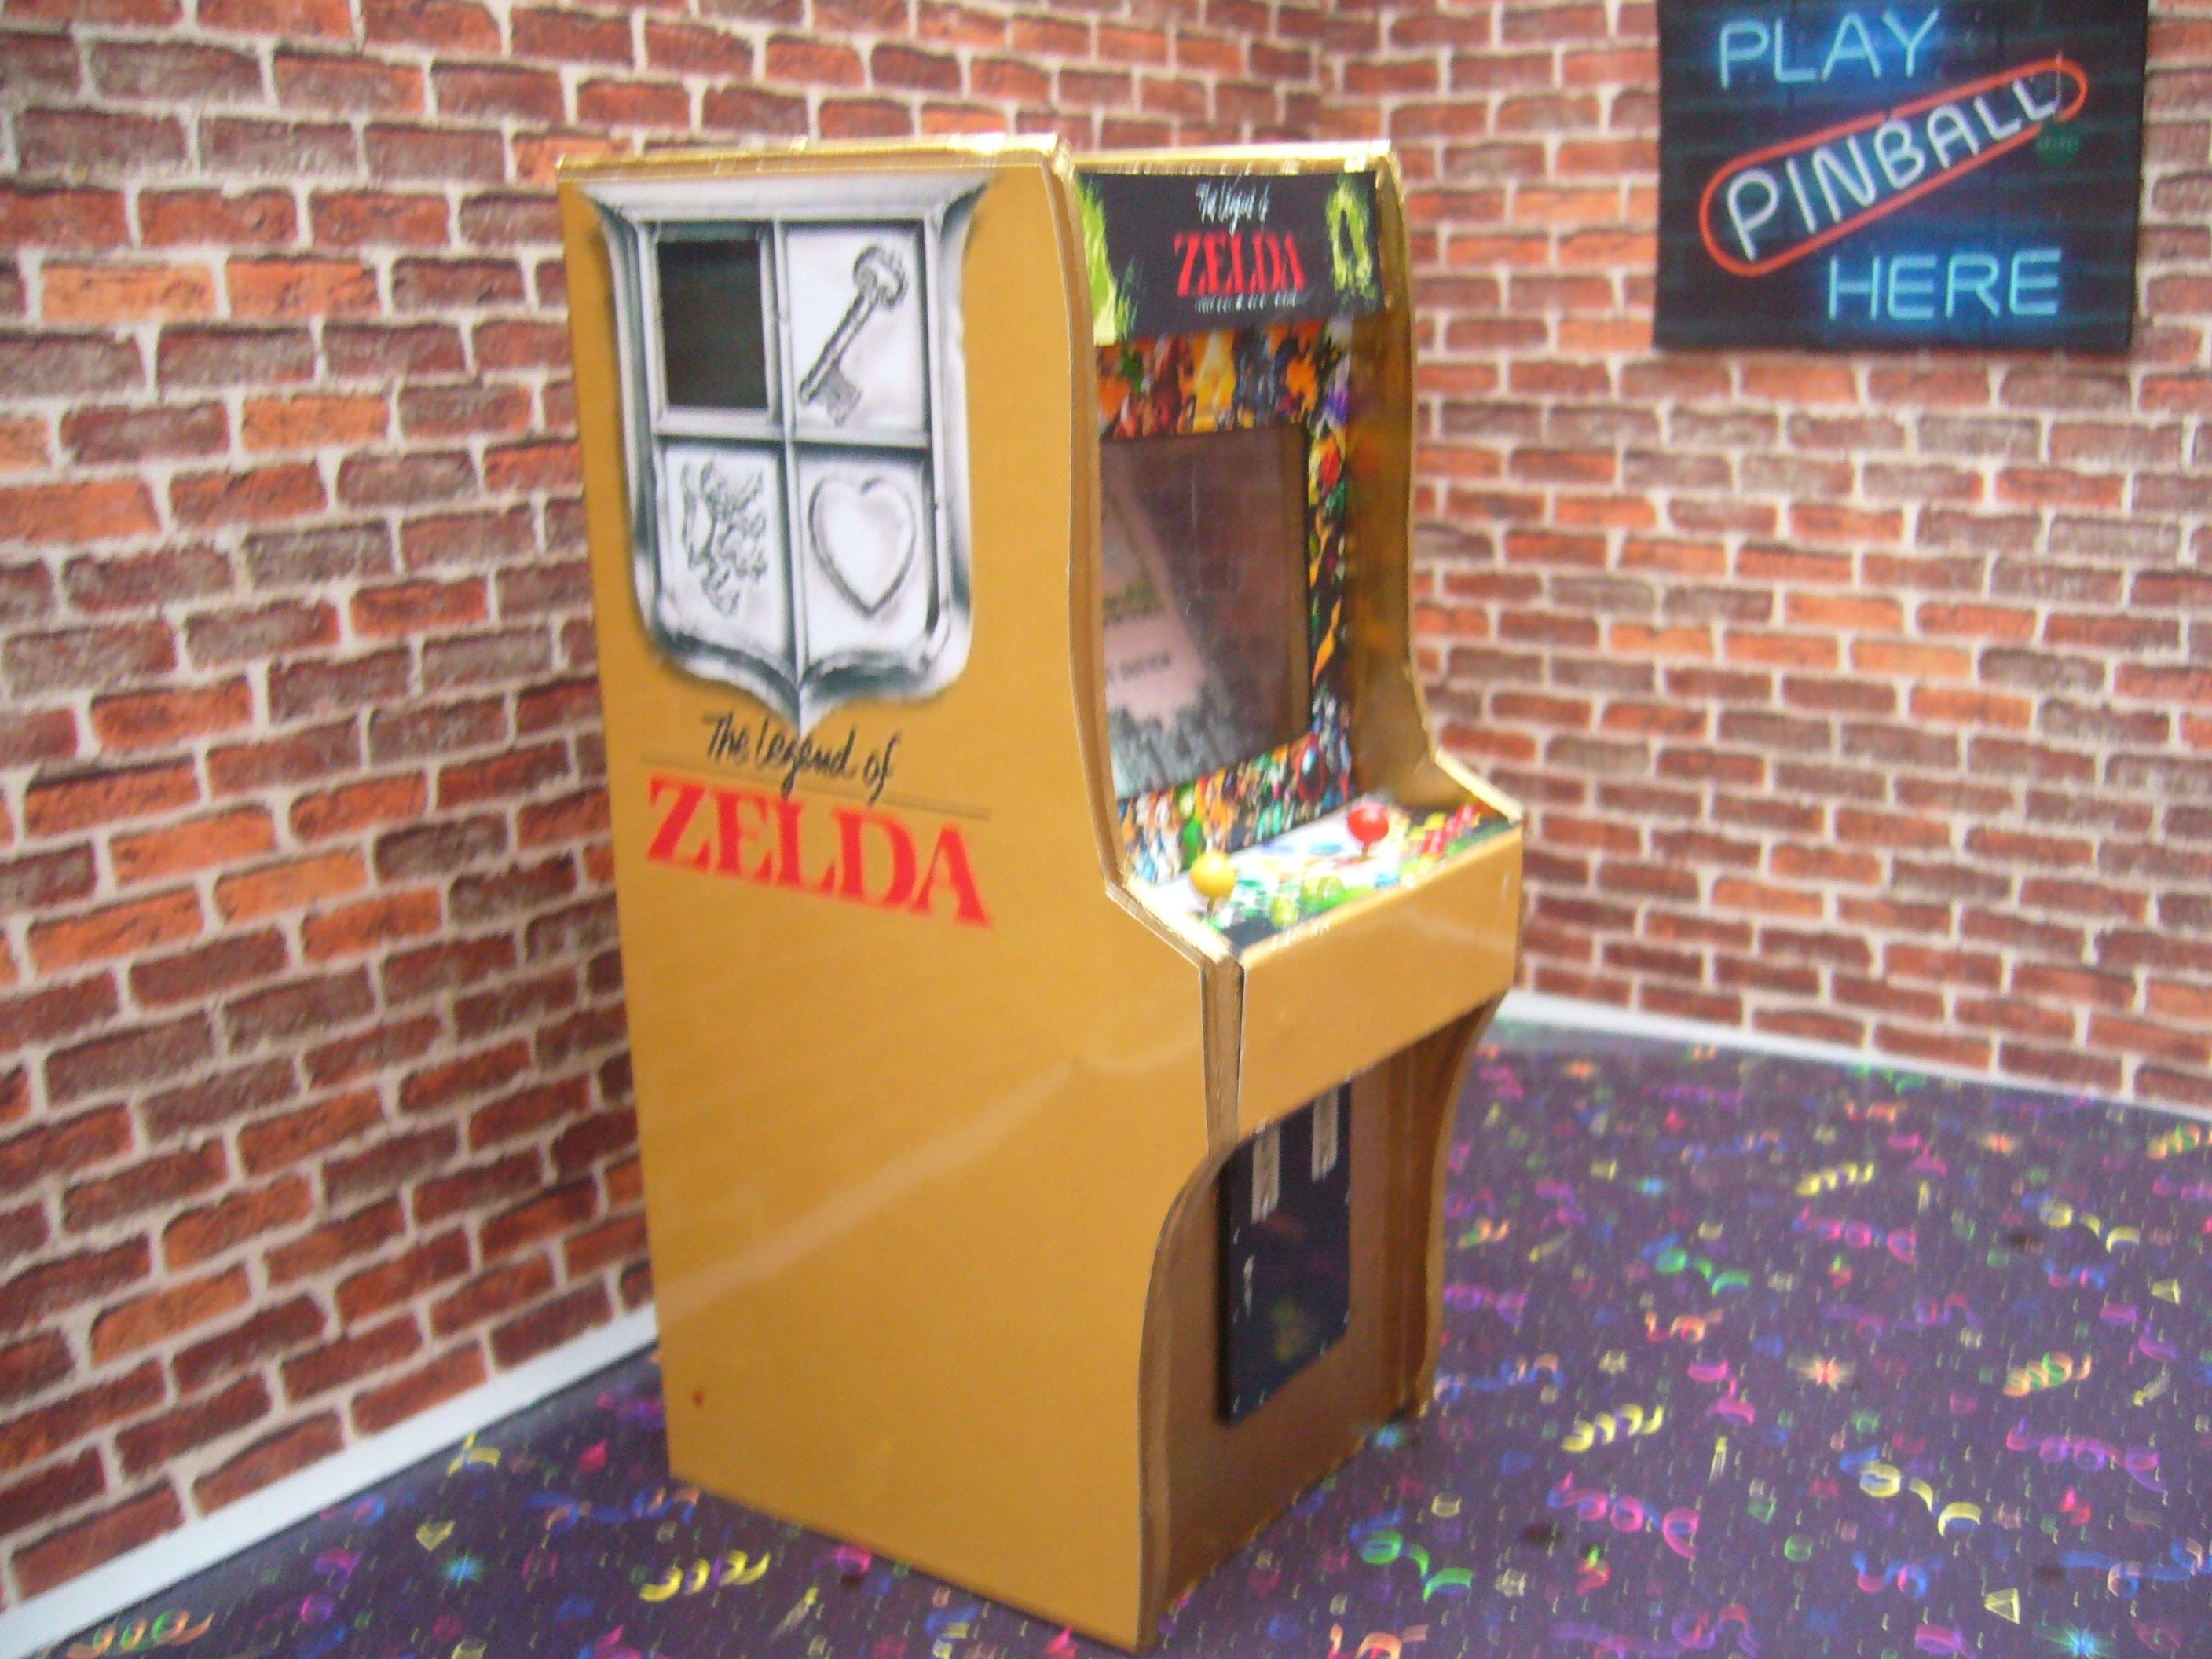 legend of zelda arcade